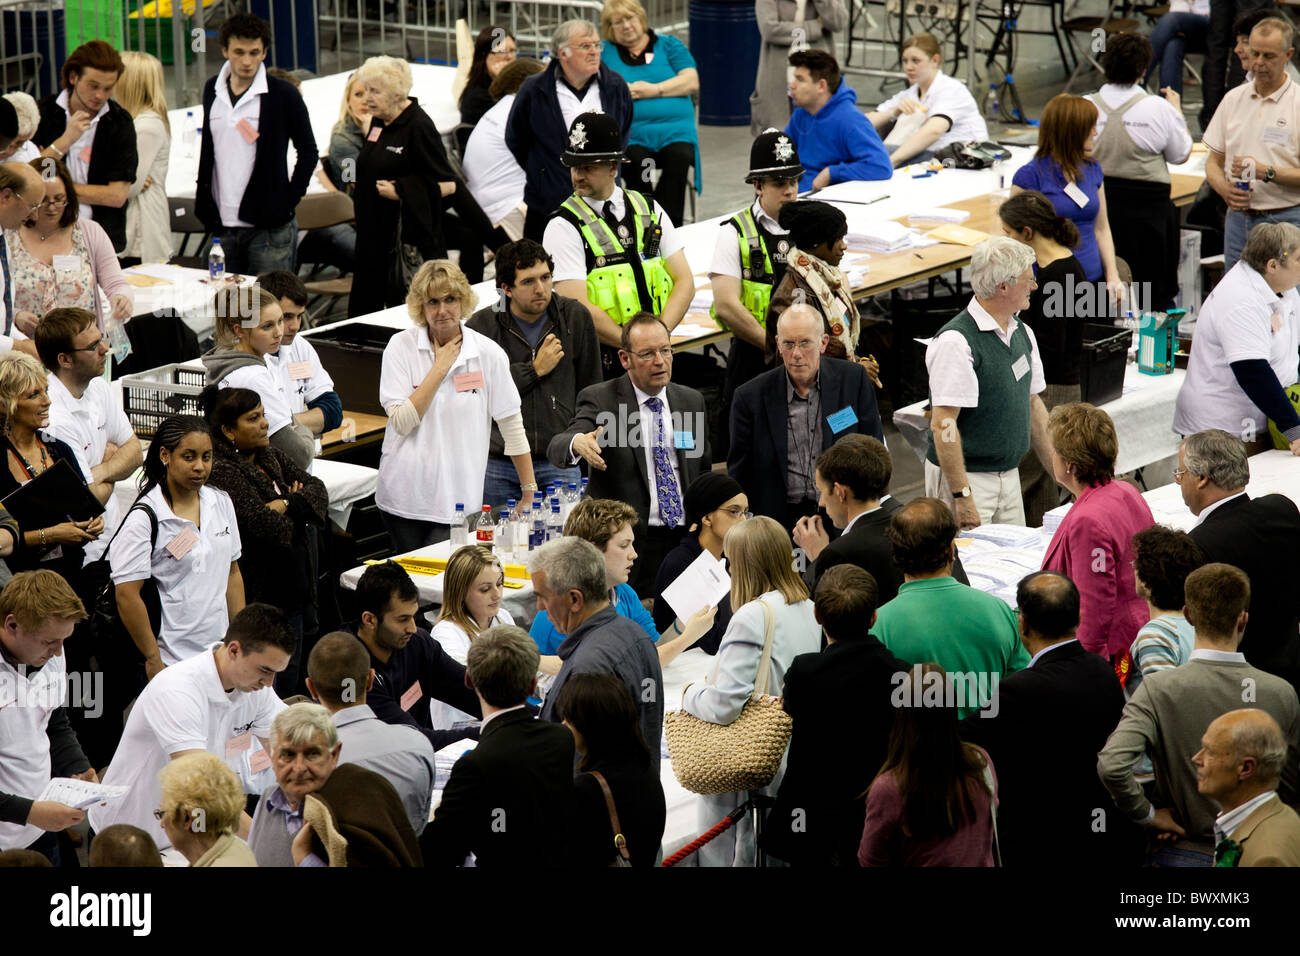 General election count 2010 held at the National Indoor Arena Birmingham - Stock Image